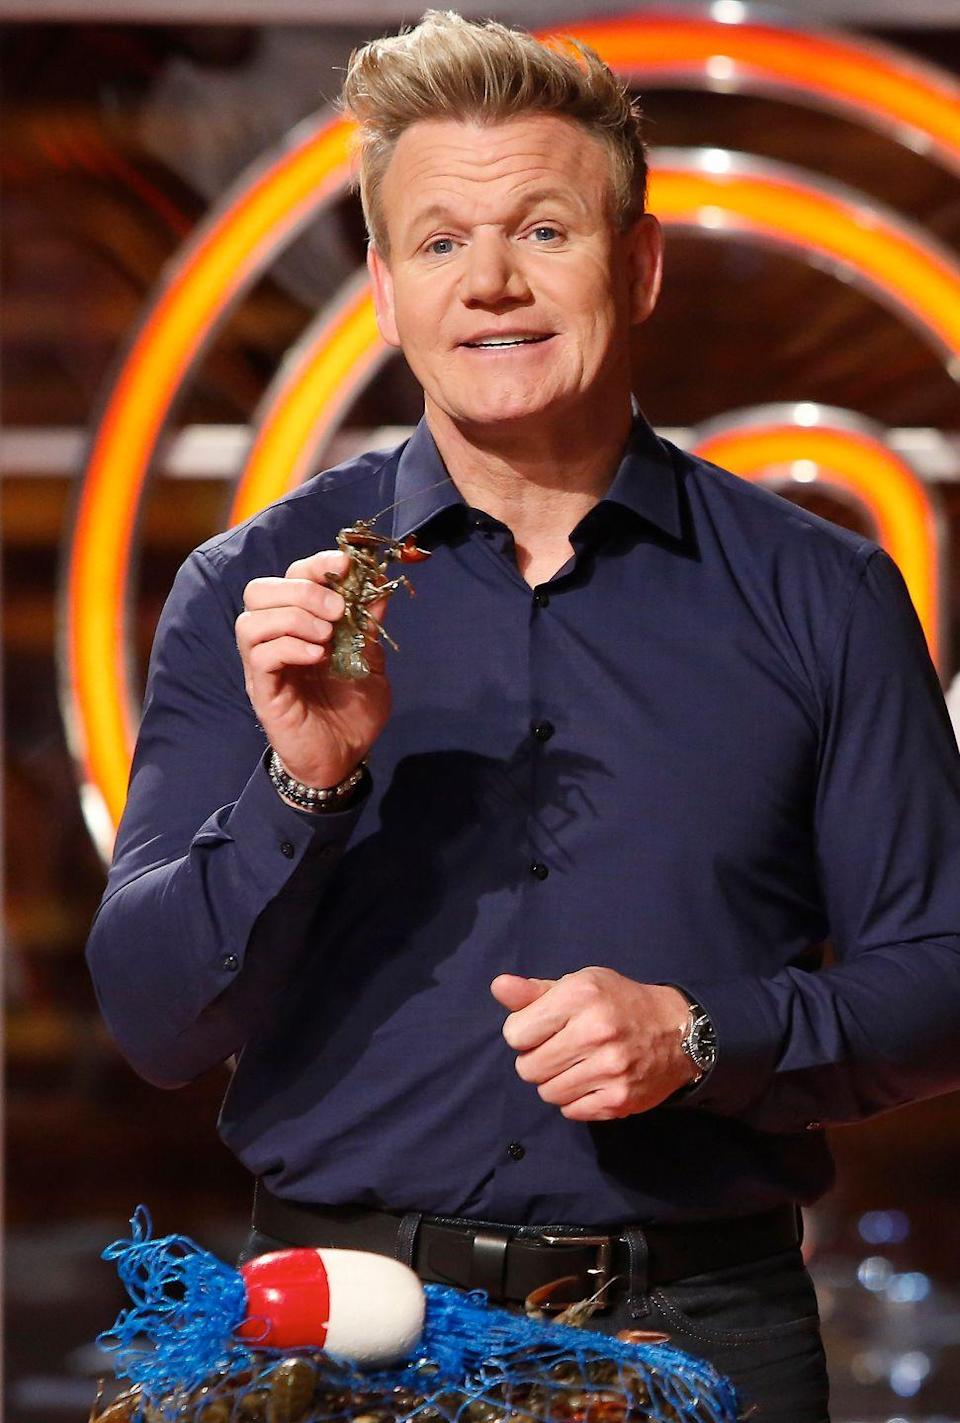 "<p>While you're on the show, production <a href=""https://tv.avclub.com/what-it-s-like-to-be-a-contestant-on-masterchef-1798282063"" rel=""nofollow noopener"" target=""_blank"" data-ylk=""slk:limits your contact with the outside world"" class=""link rapid-noclick-resp"">limits your contact with the outside world</a> as much as possible.</p>"